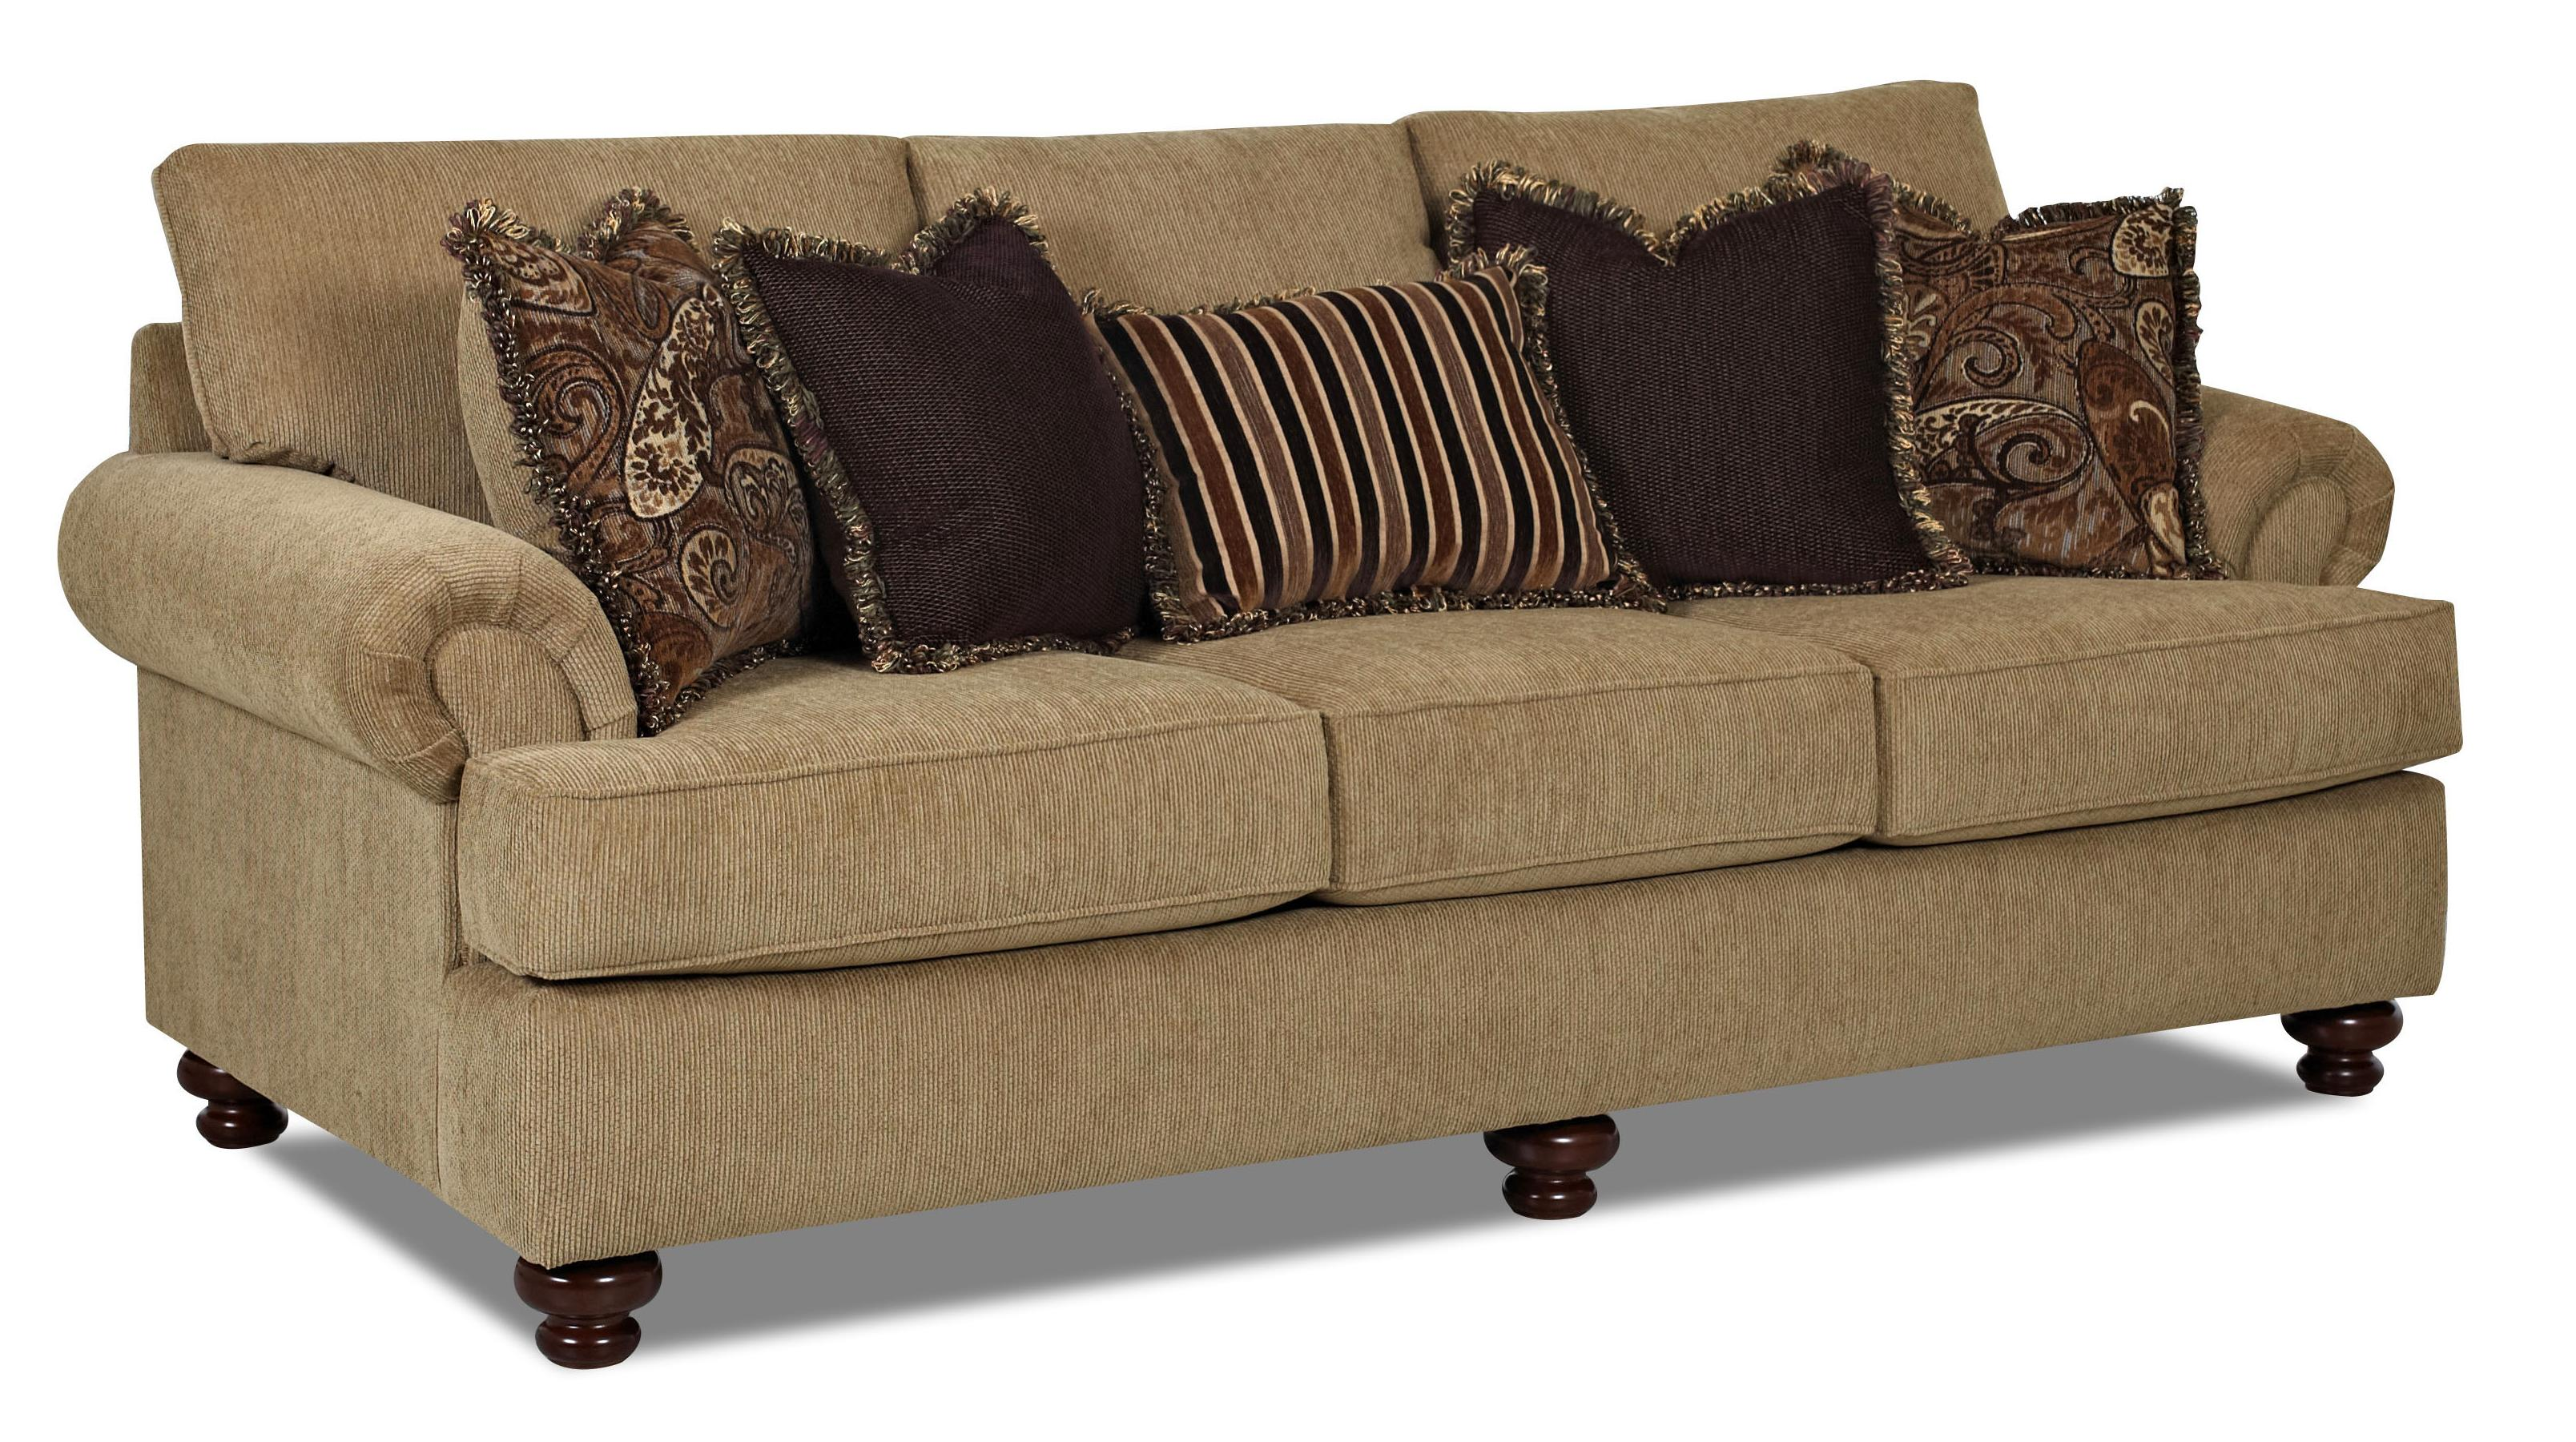 Traditional Stationary Sofa With Rolled Arms And Bun Feet